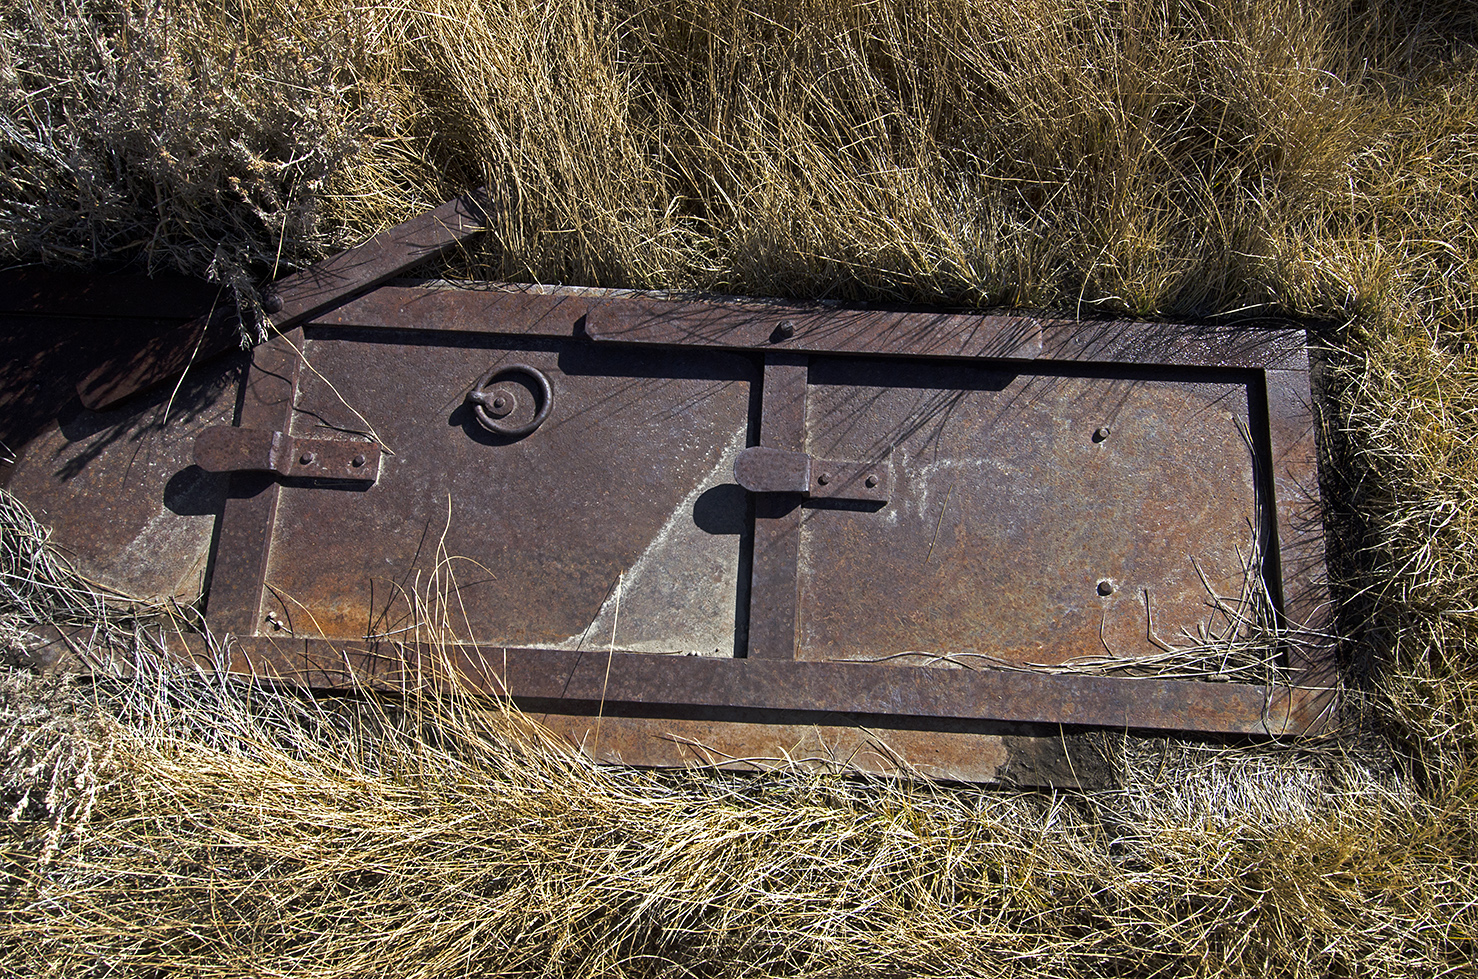 Who knows what building this old iron door came from. They were used to help prevent the spread of fire more than to protect against burglary.